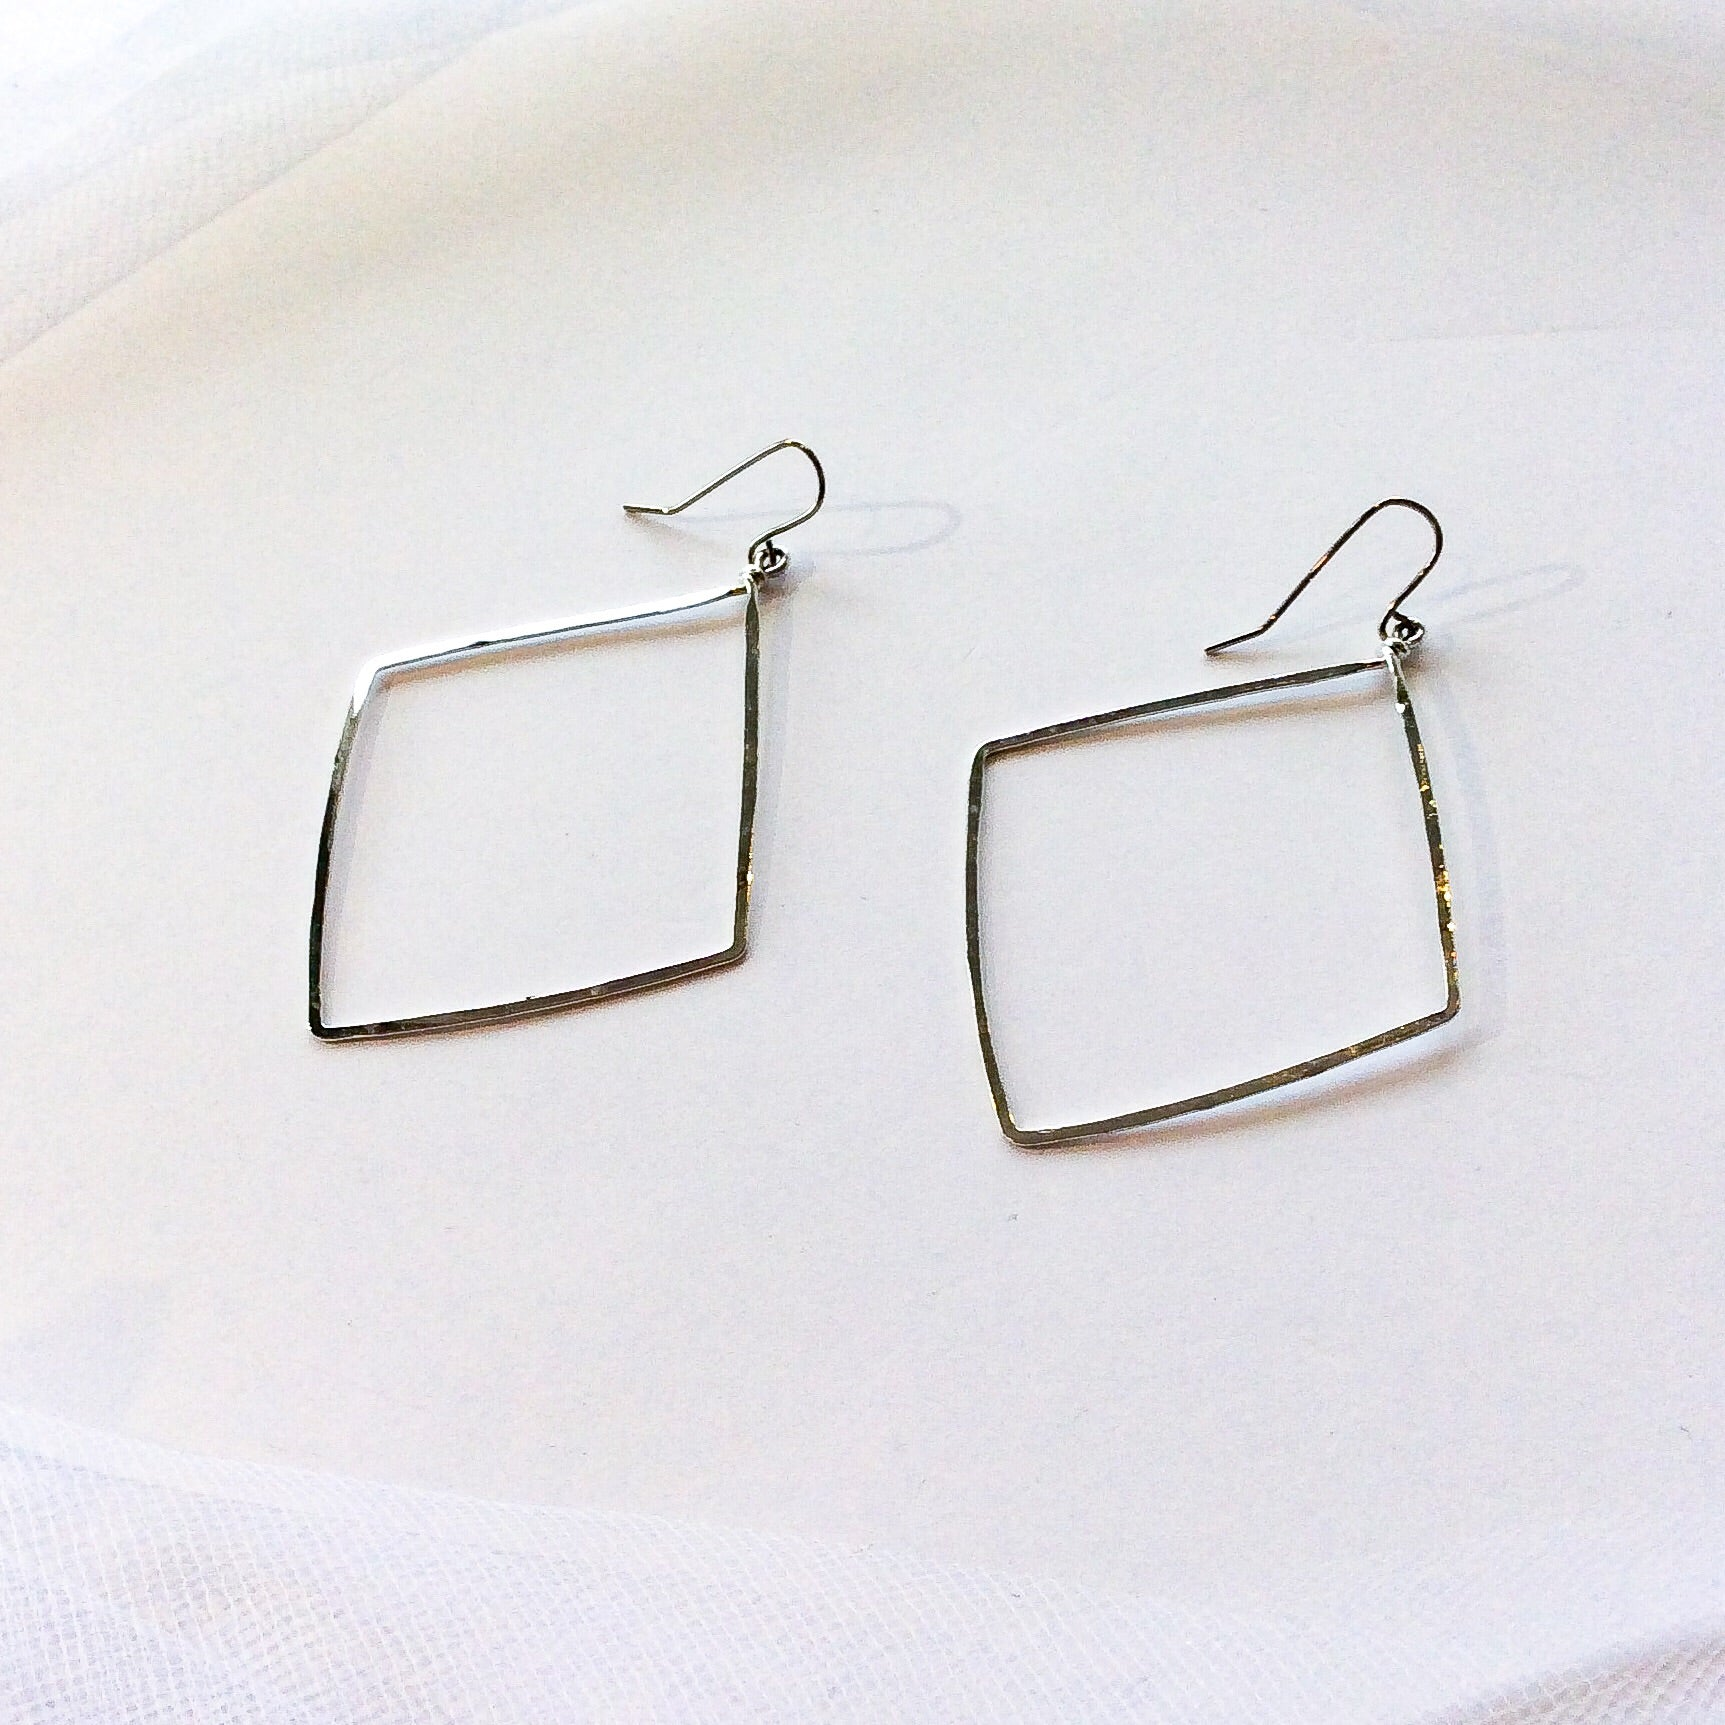 hammered, white gold plated earrings in the shape of a diamond